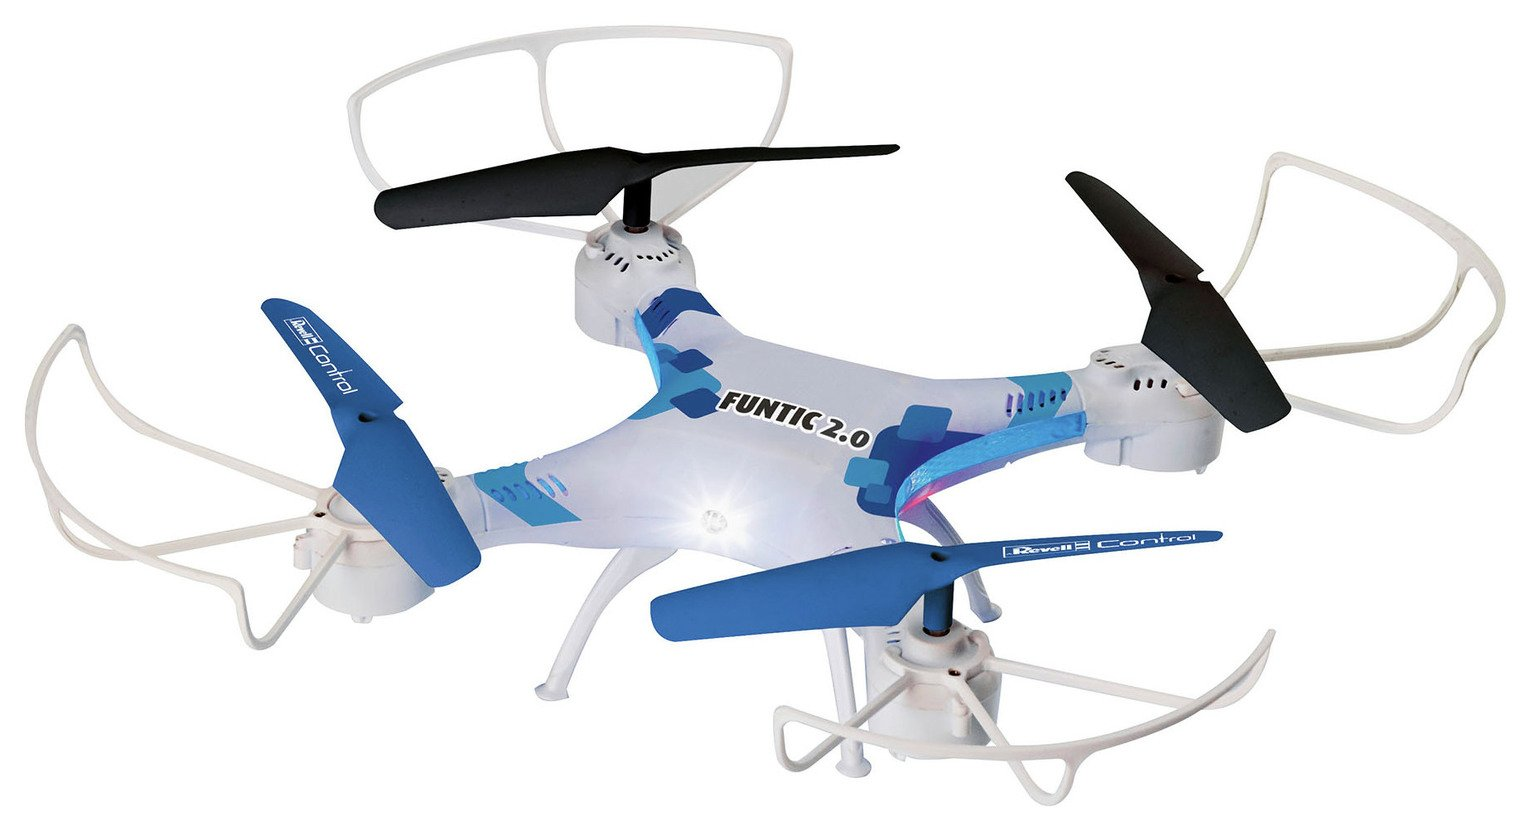 Revell Funtic 2.0 Quadcopter Drone